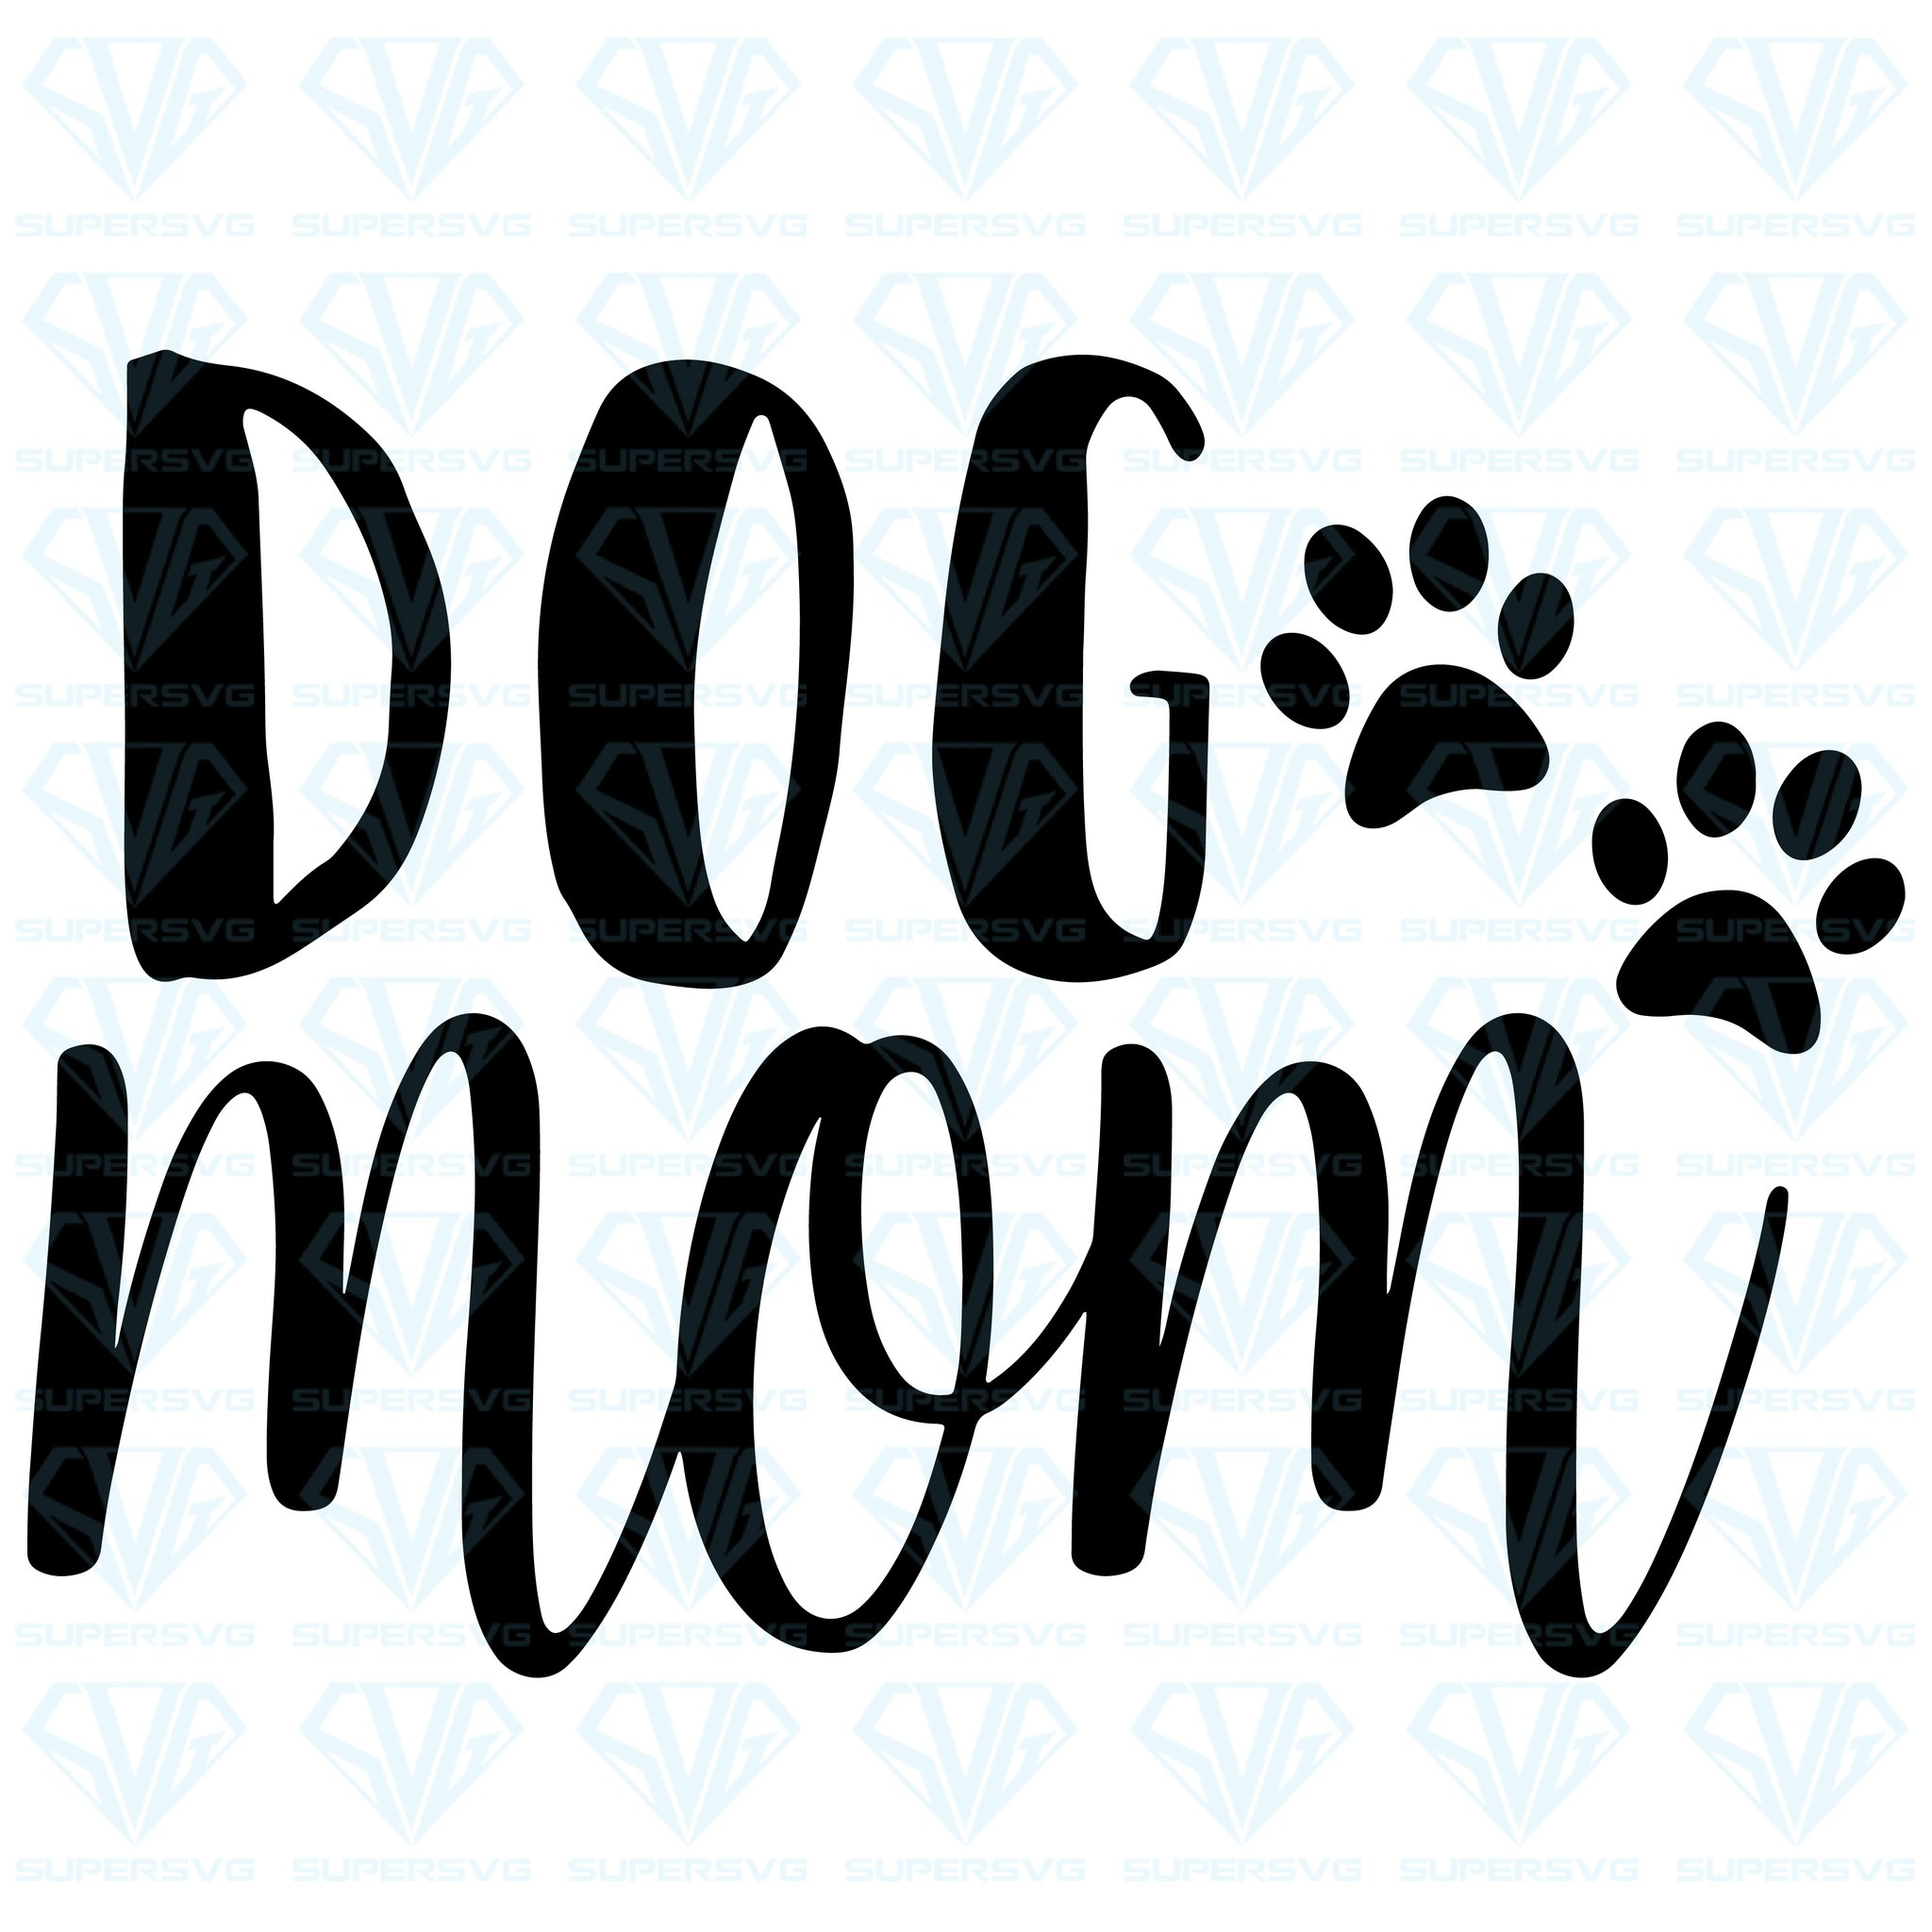 Dog Mom SVG Files For Silhouette, Files For Cricut, SVG, DXF, EPS, PNG  Instant Download.